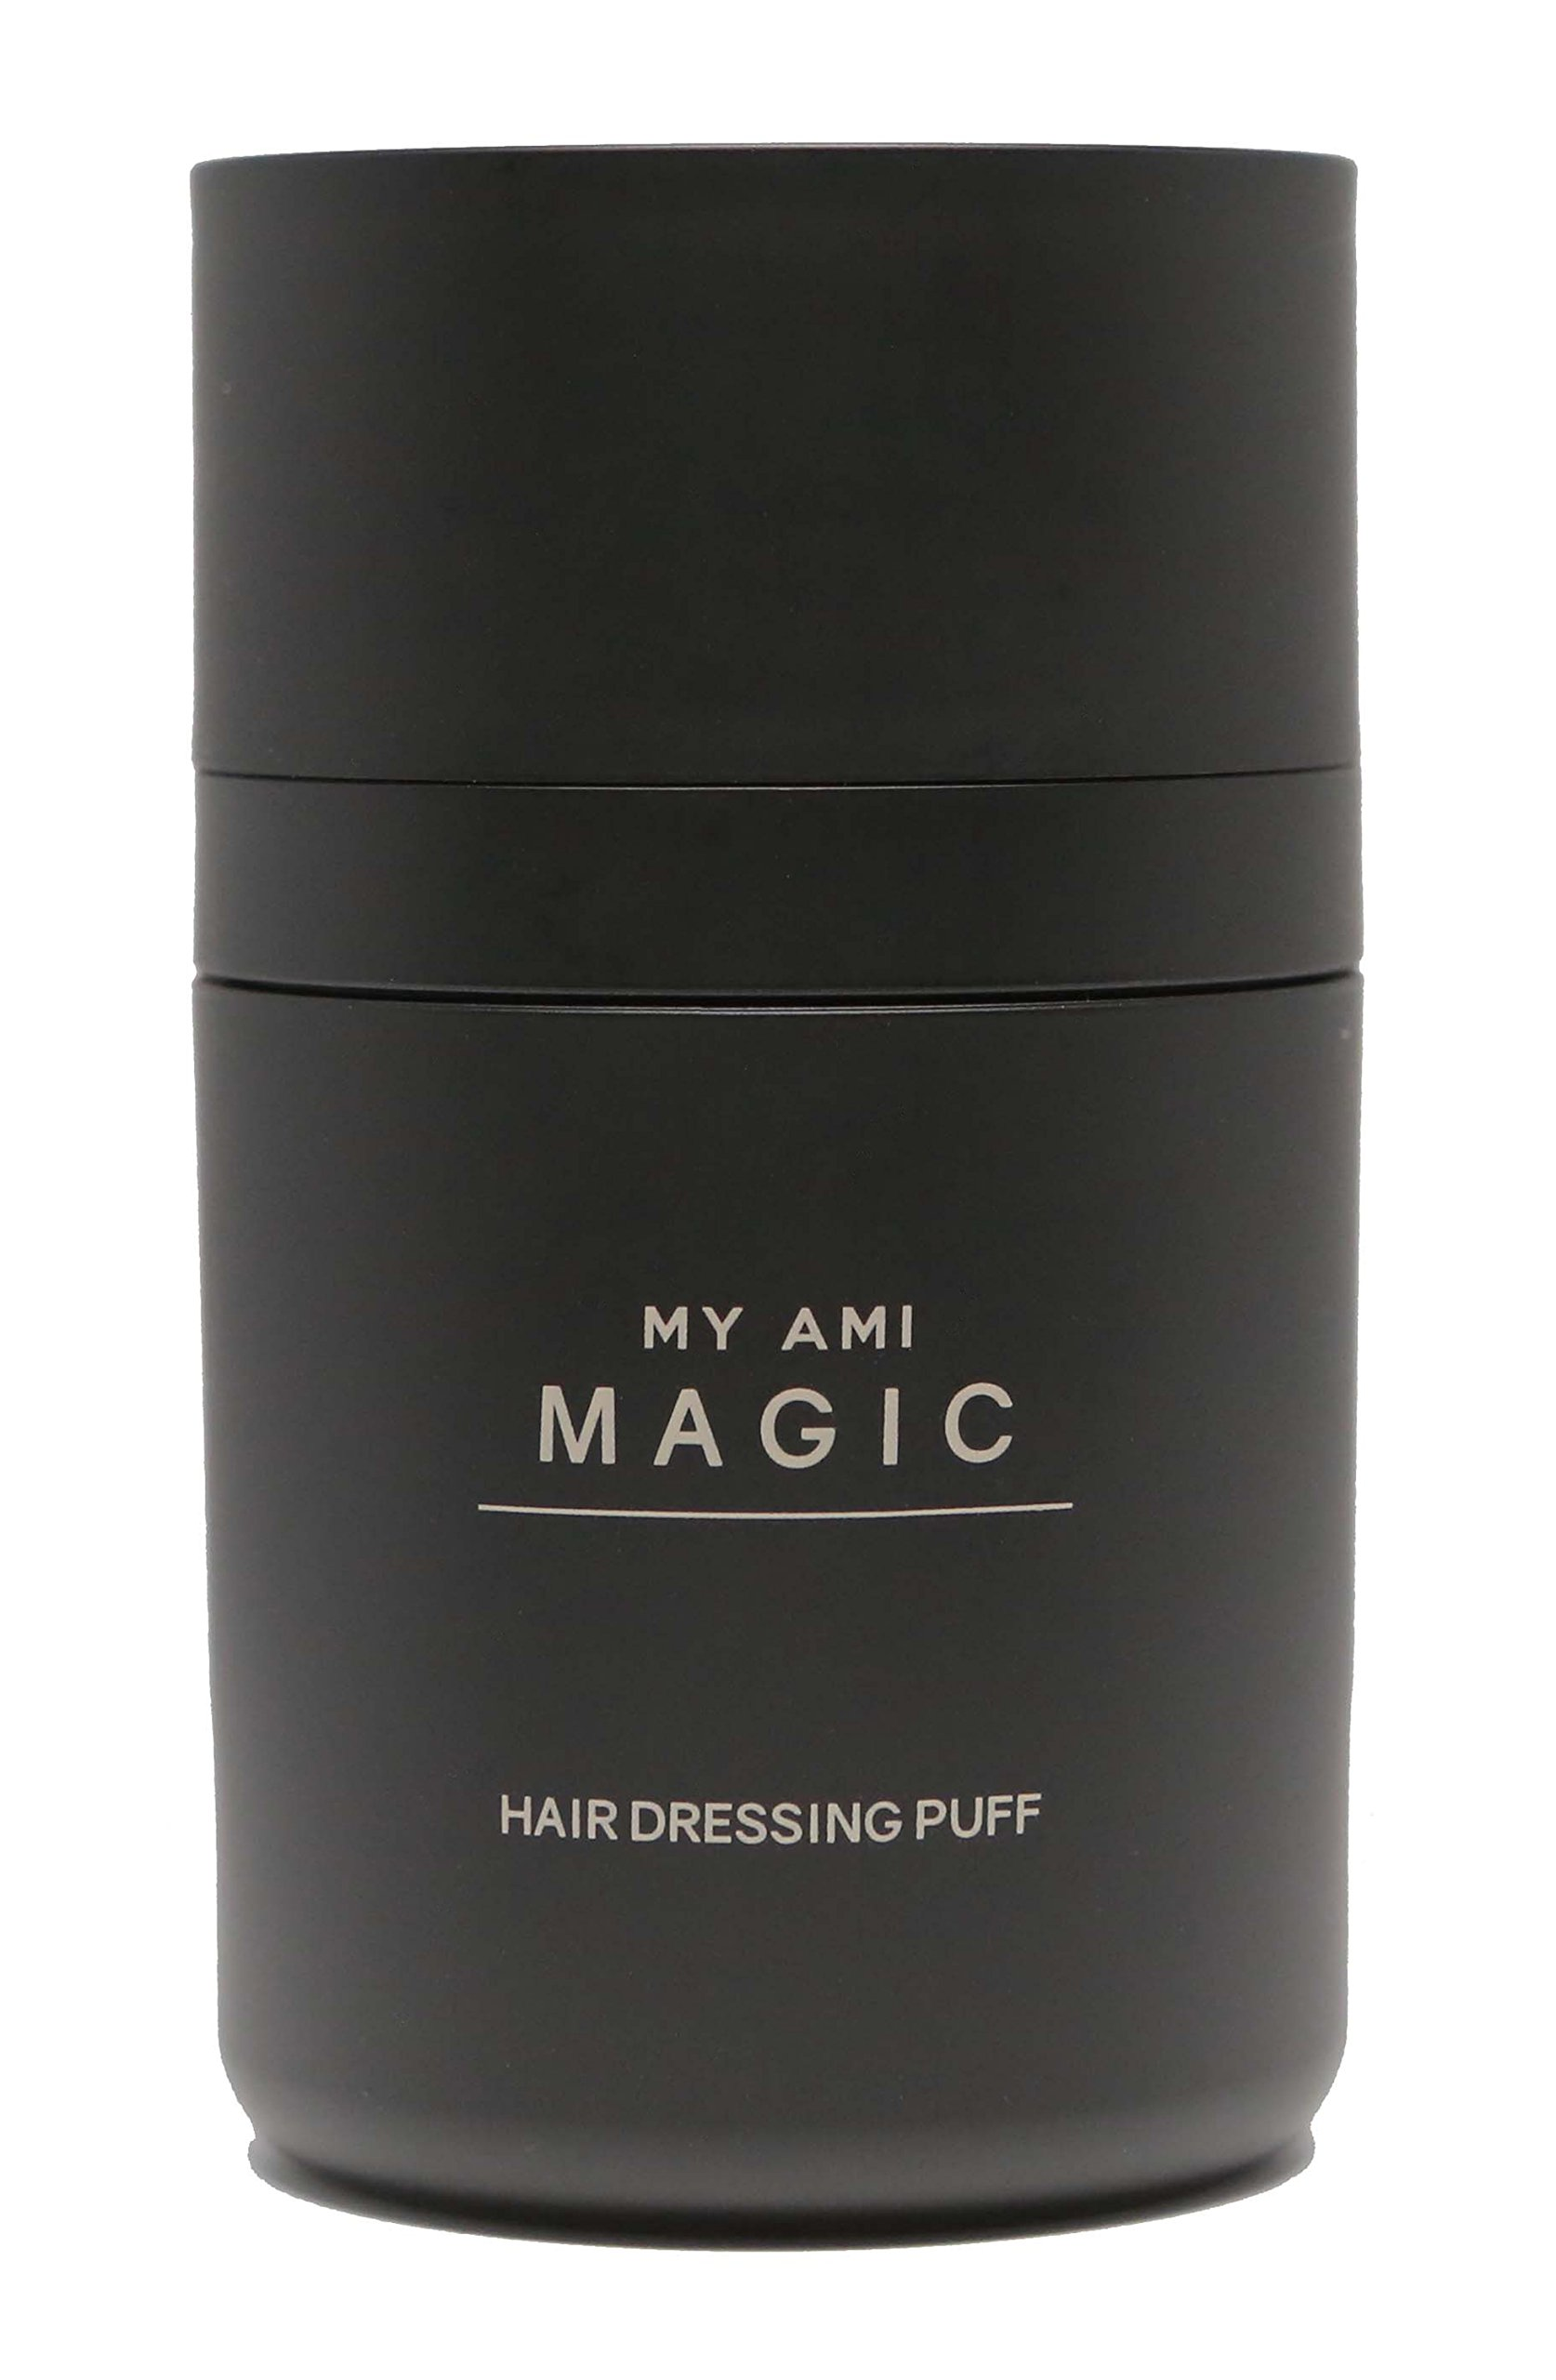 Magic Hair Dressing - Hair building fibers hair loss concealer.NEW on Amazon USA, Best Seller in Korea - Natural Black